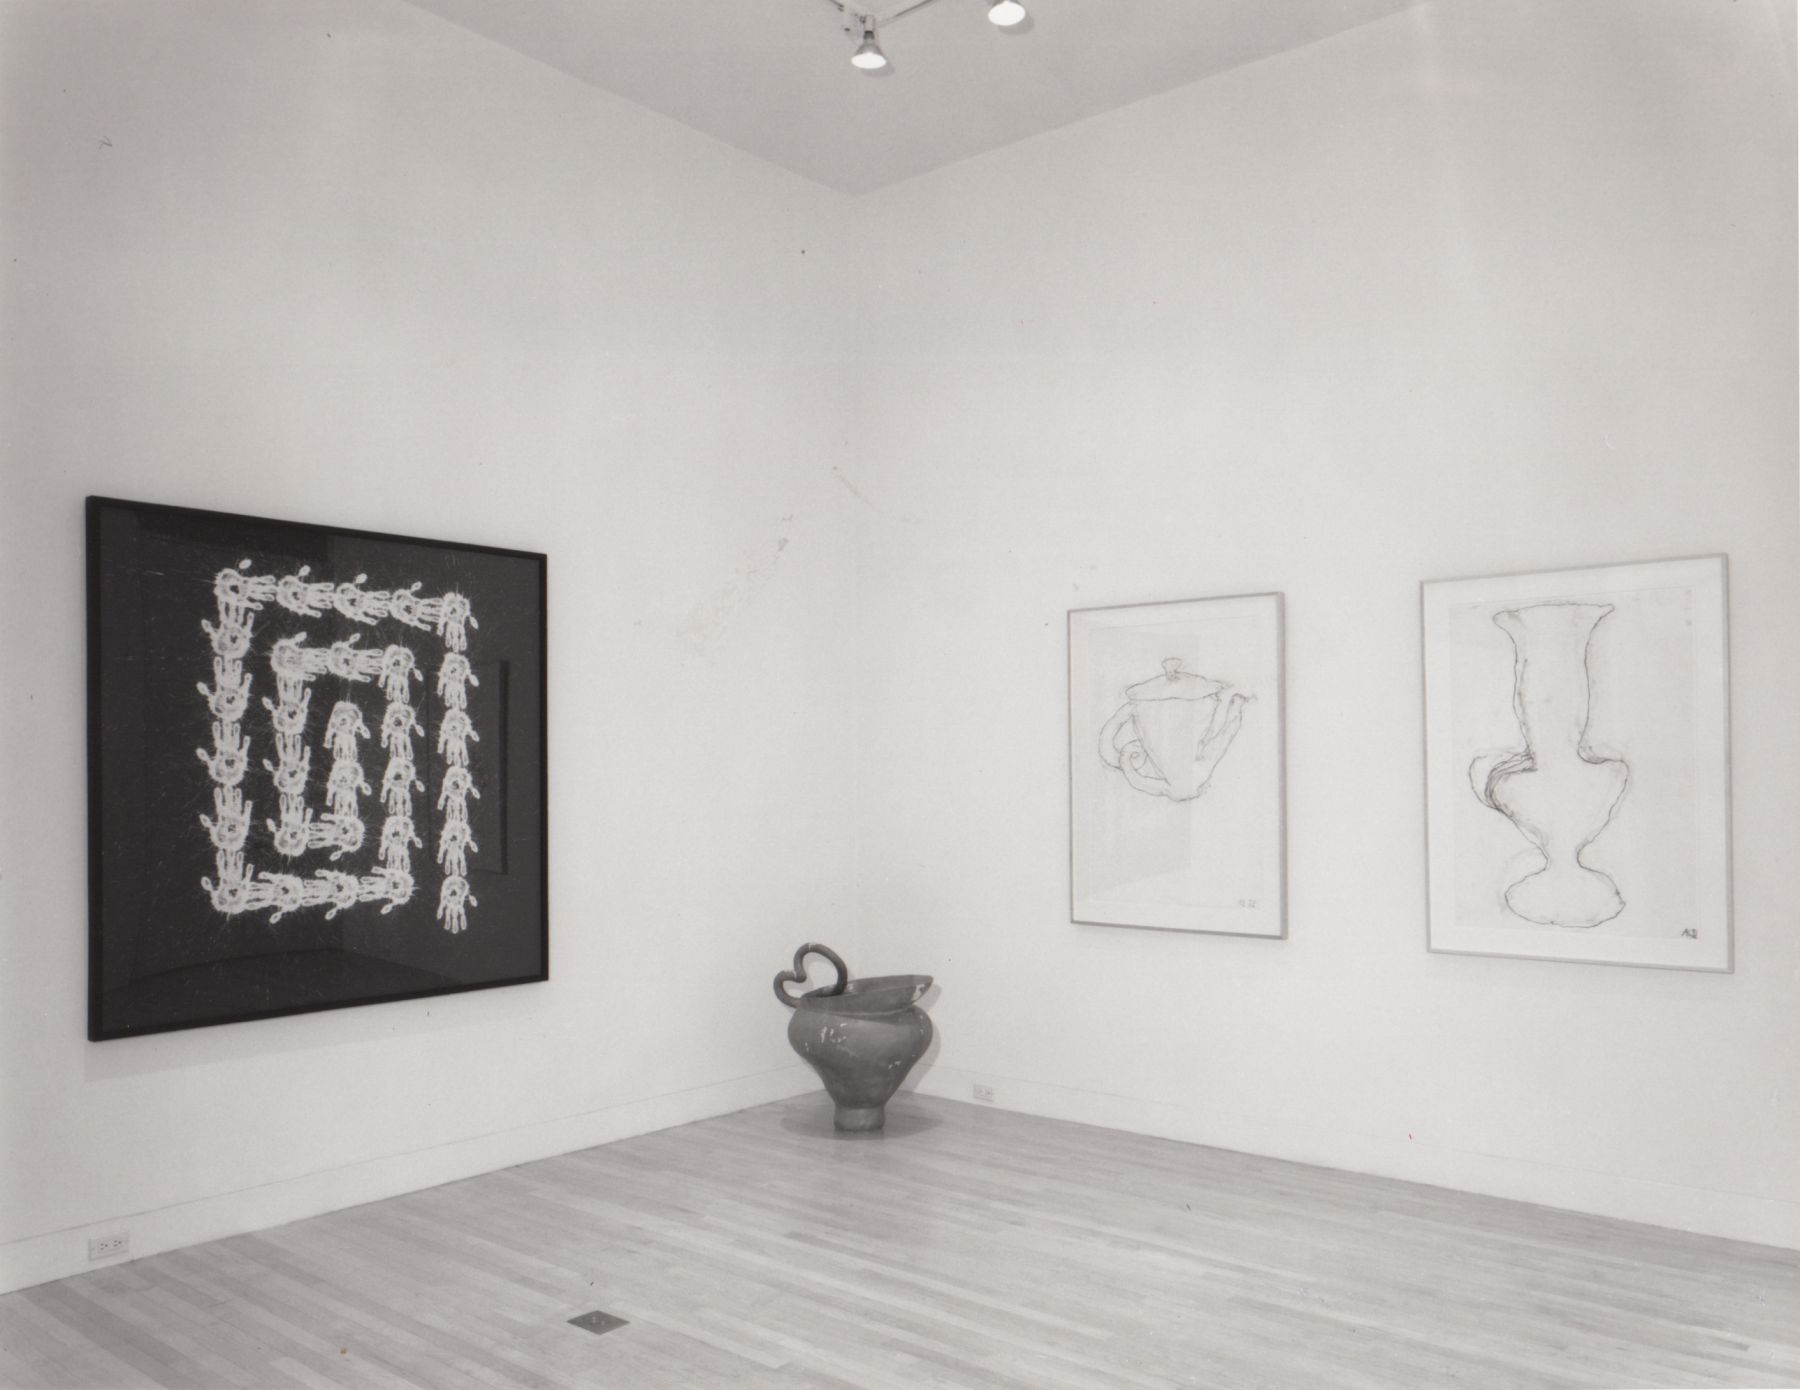 Installation view, Summer Group Show, 65 THOMPSON.